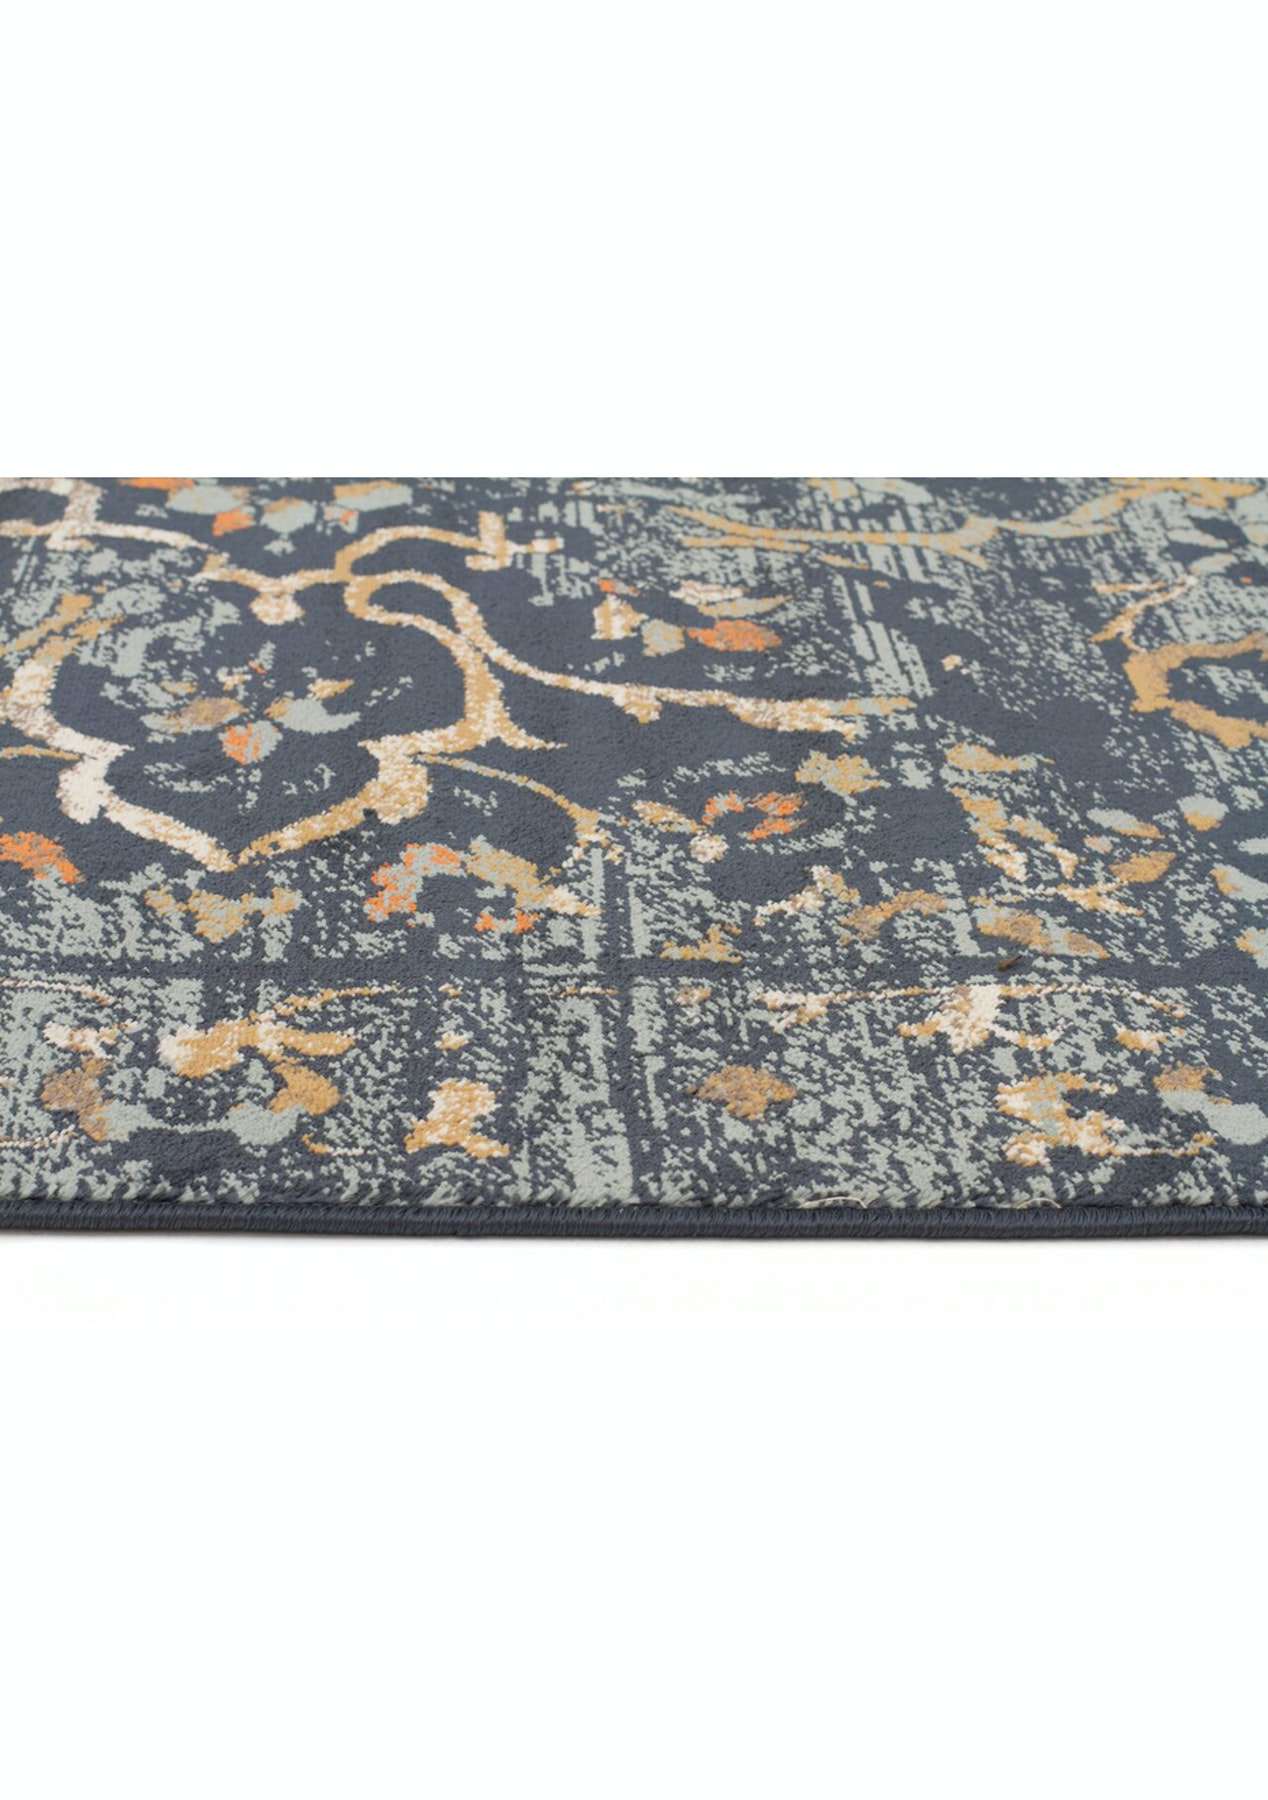 Navy Rust Multi Loomed Durable Easy Care Modern Rug 330x240cm By Culture Vintage Inspired Rugs Onceit